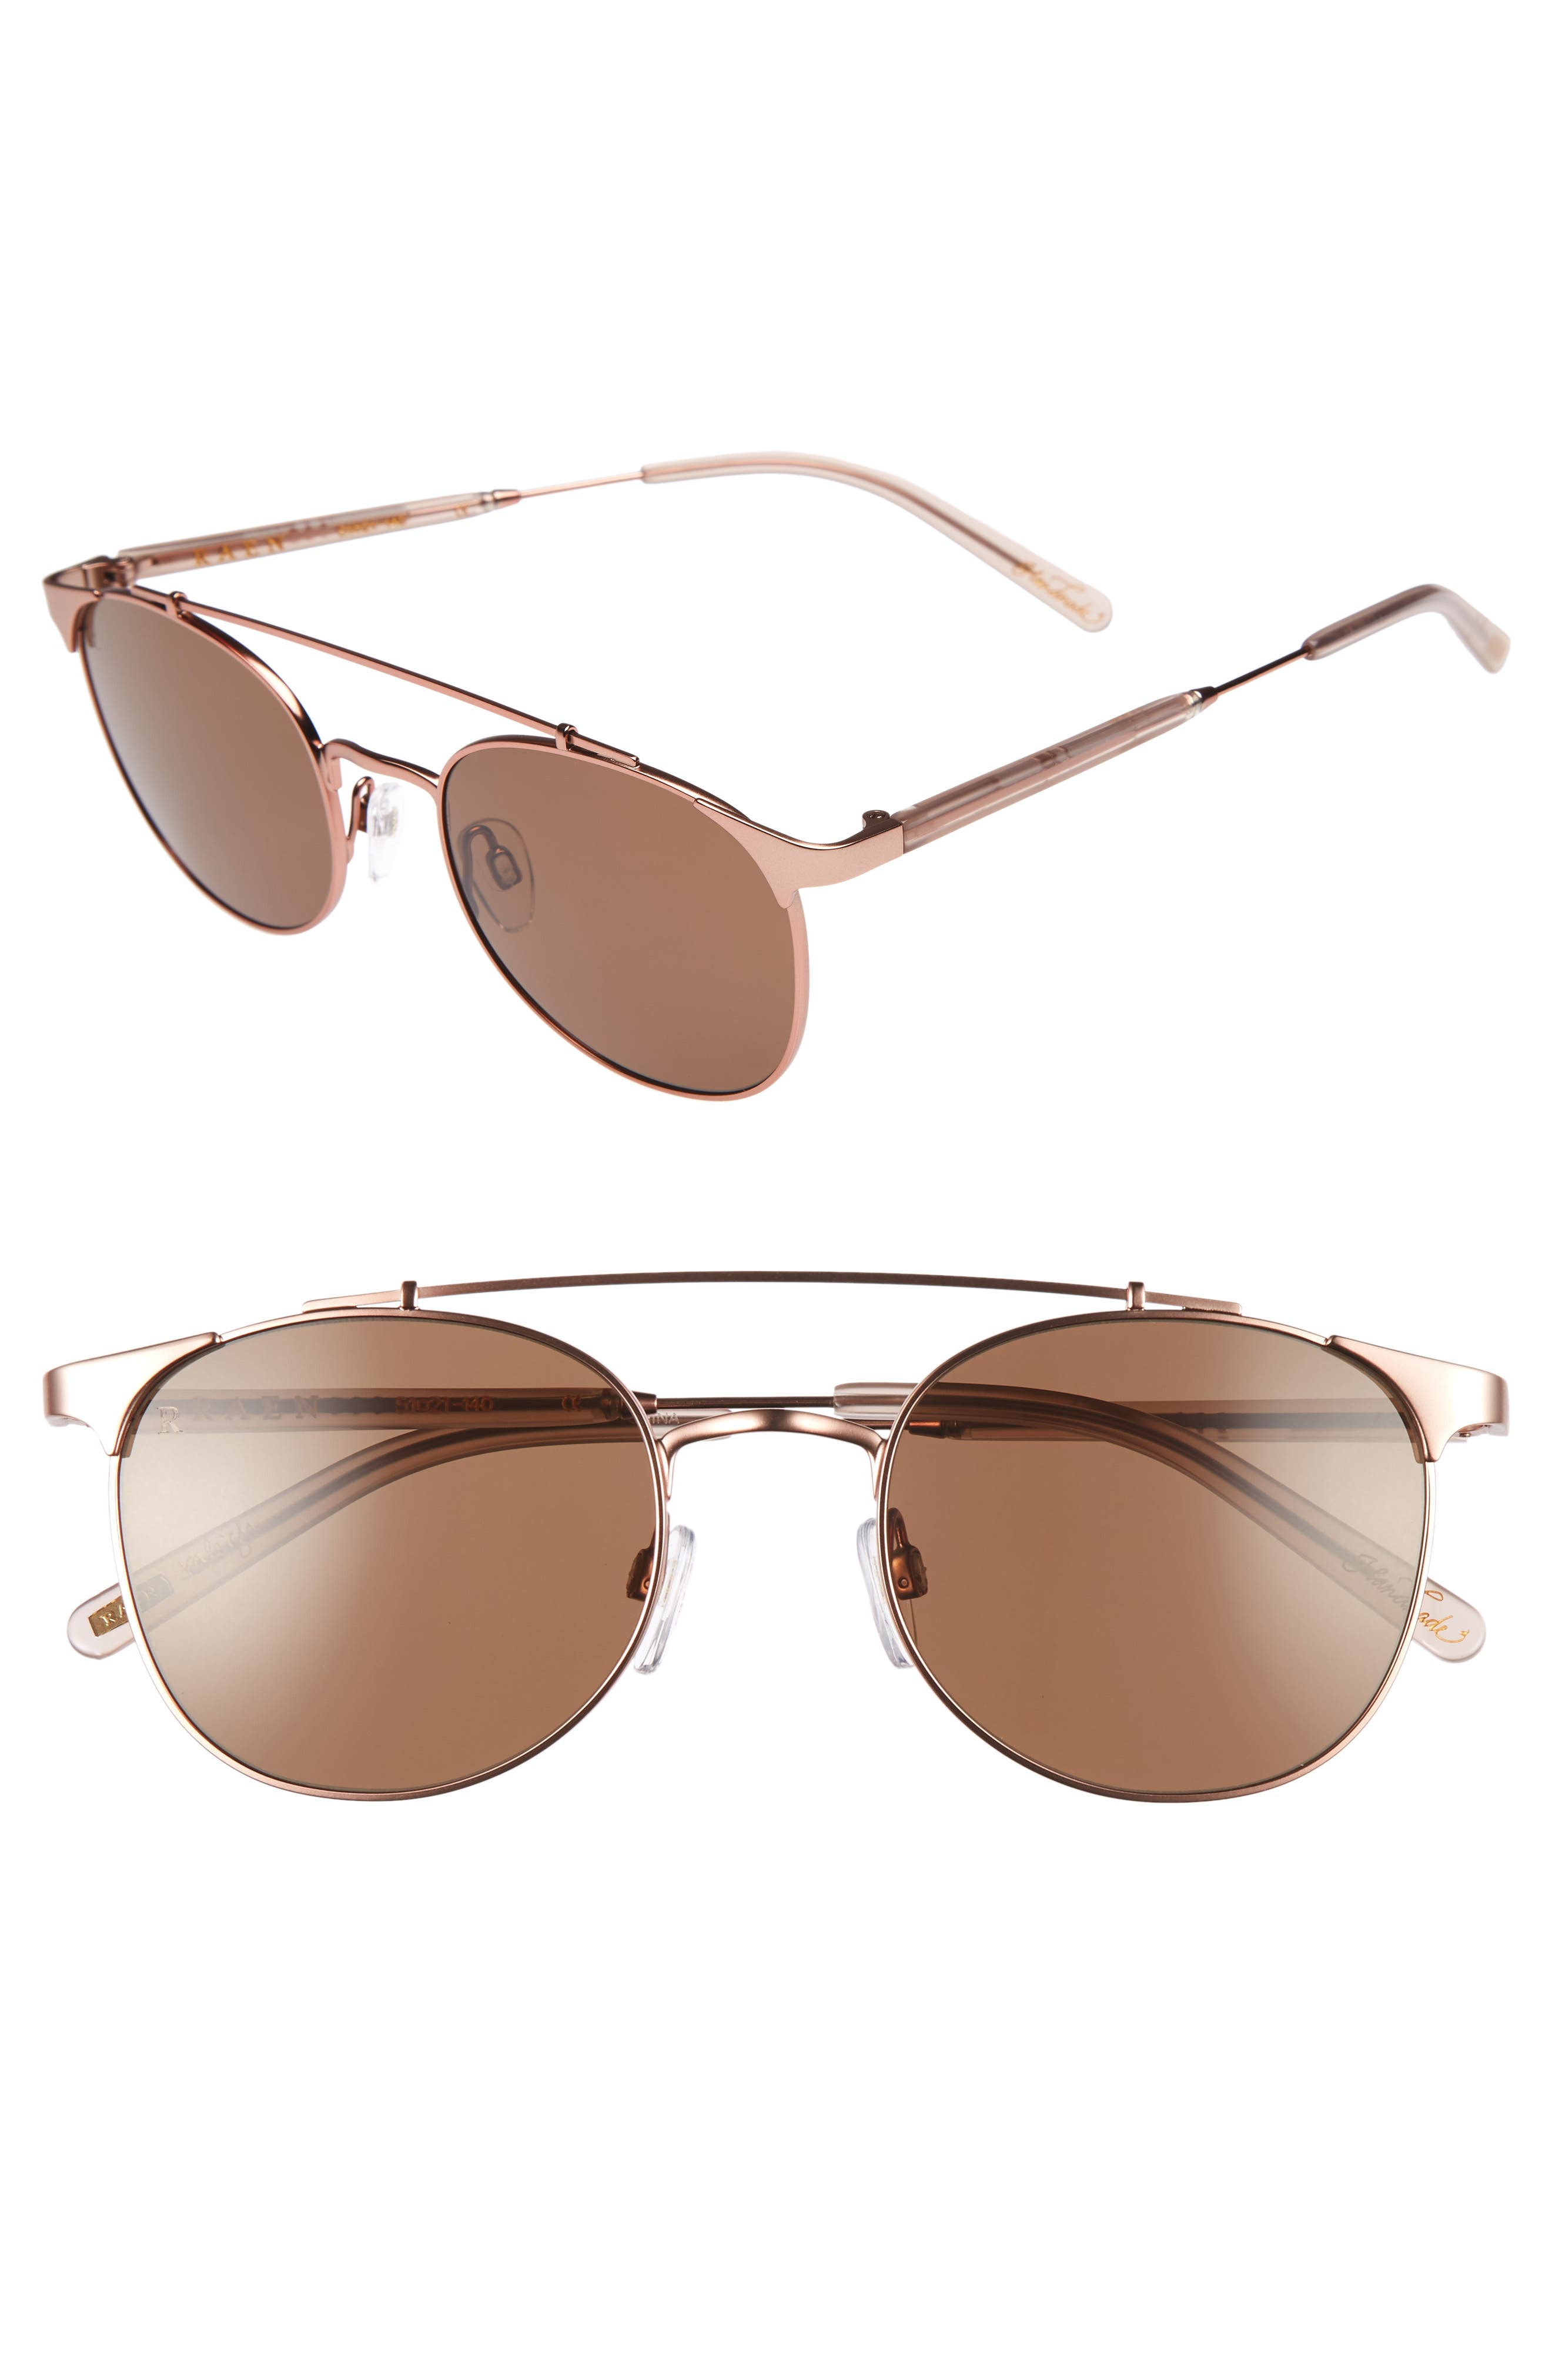 Raleigh 51mm Sunglasses,                         Main,                         color, Rose Gold/ Flesh